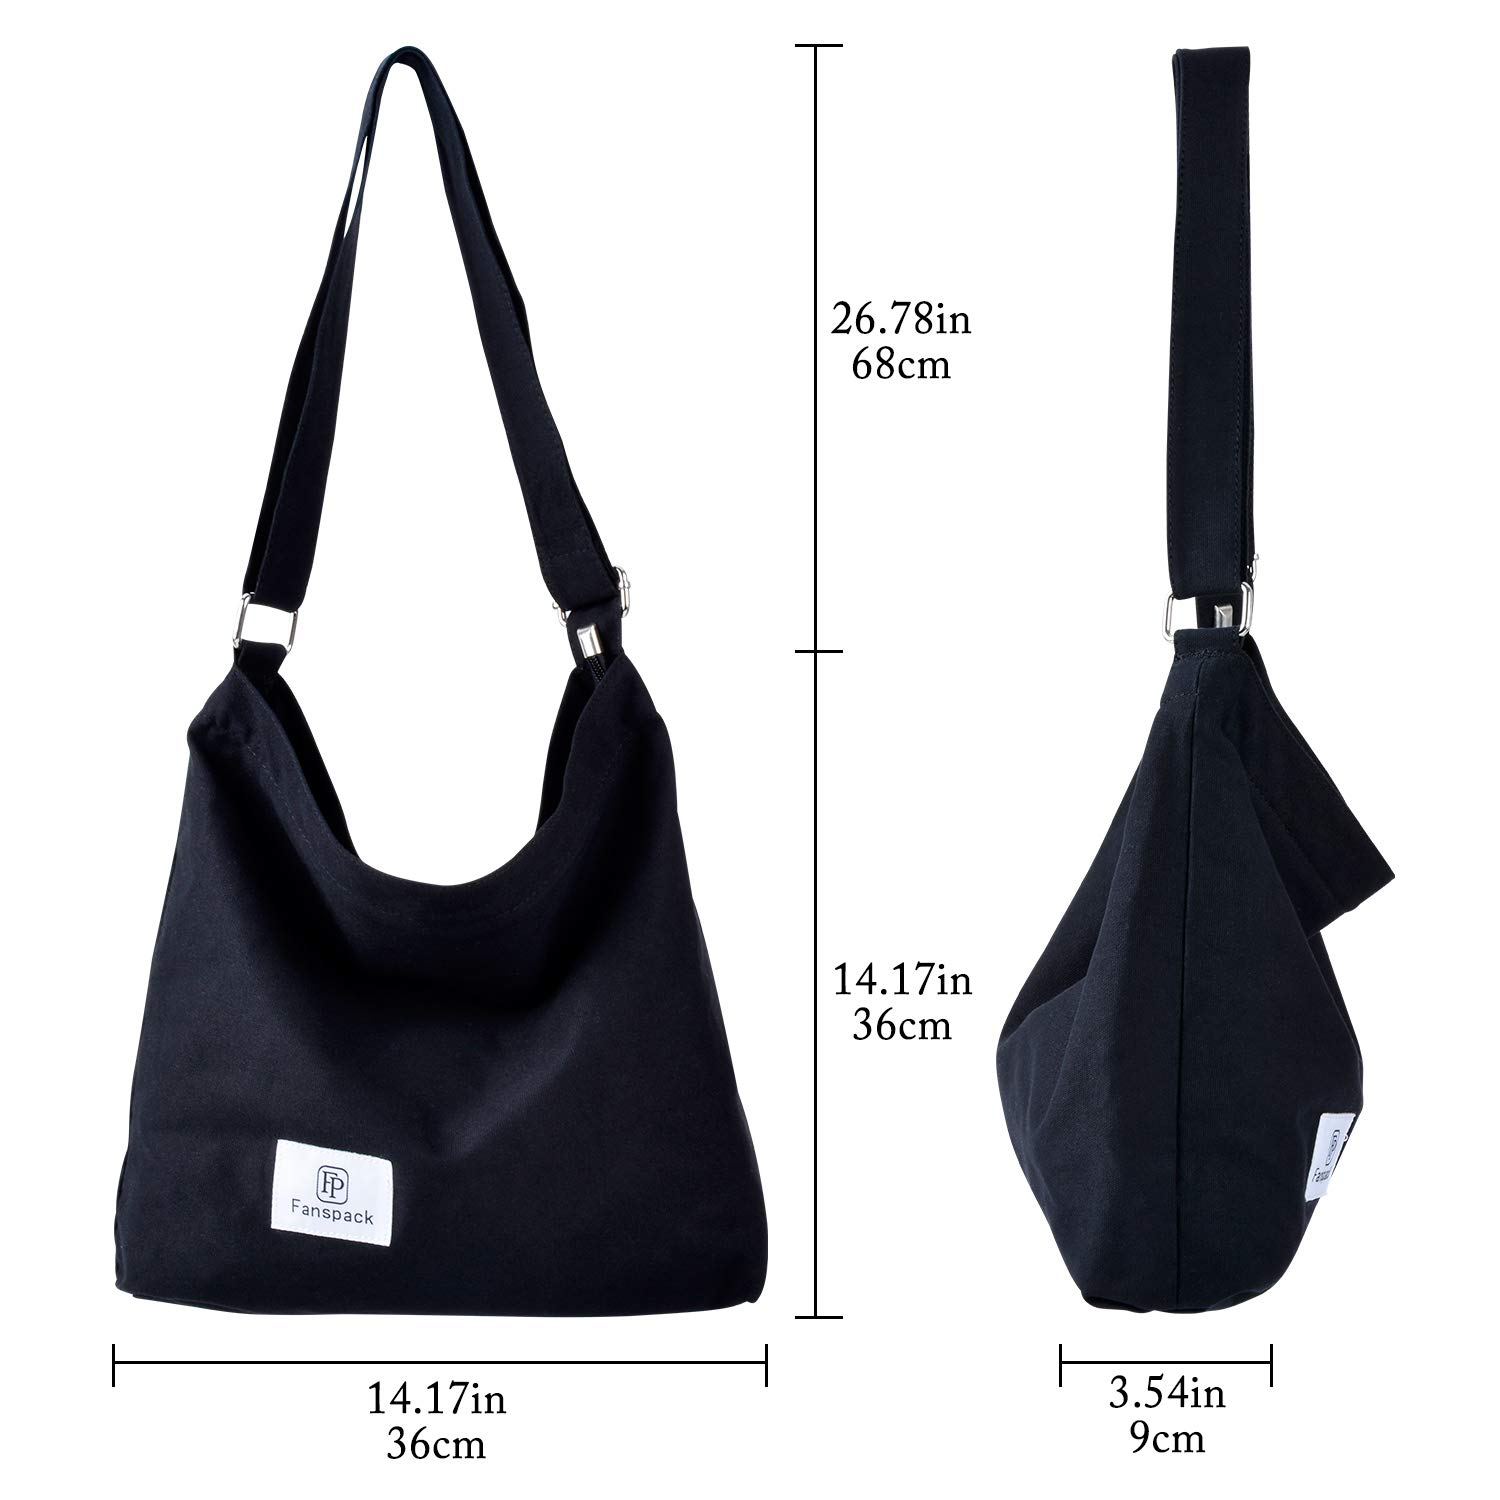 903898e8e Amazon.com: Fanspack Women's Canvas Hobo Handbags Simple Casual Top Handle  Tote Bag Crossbody Shoulder Bag Shopping Work Bag (Black-Original Design):  ...